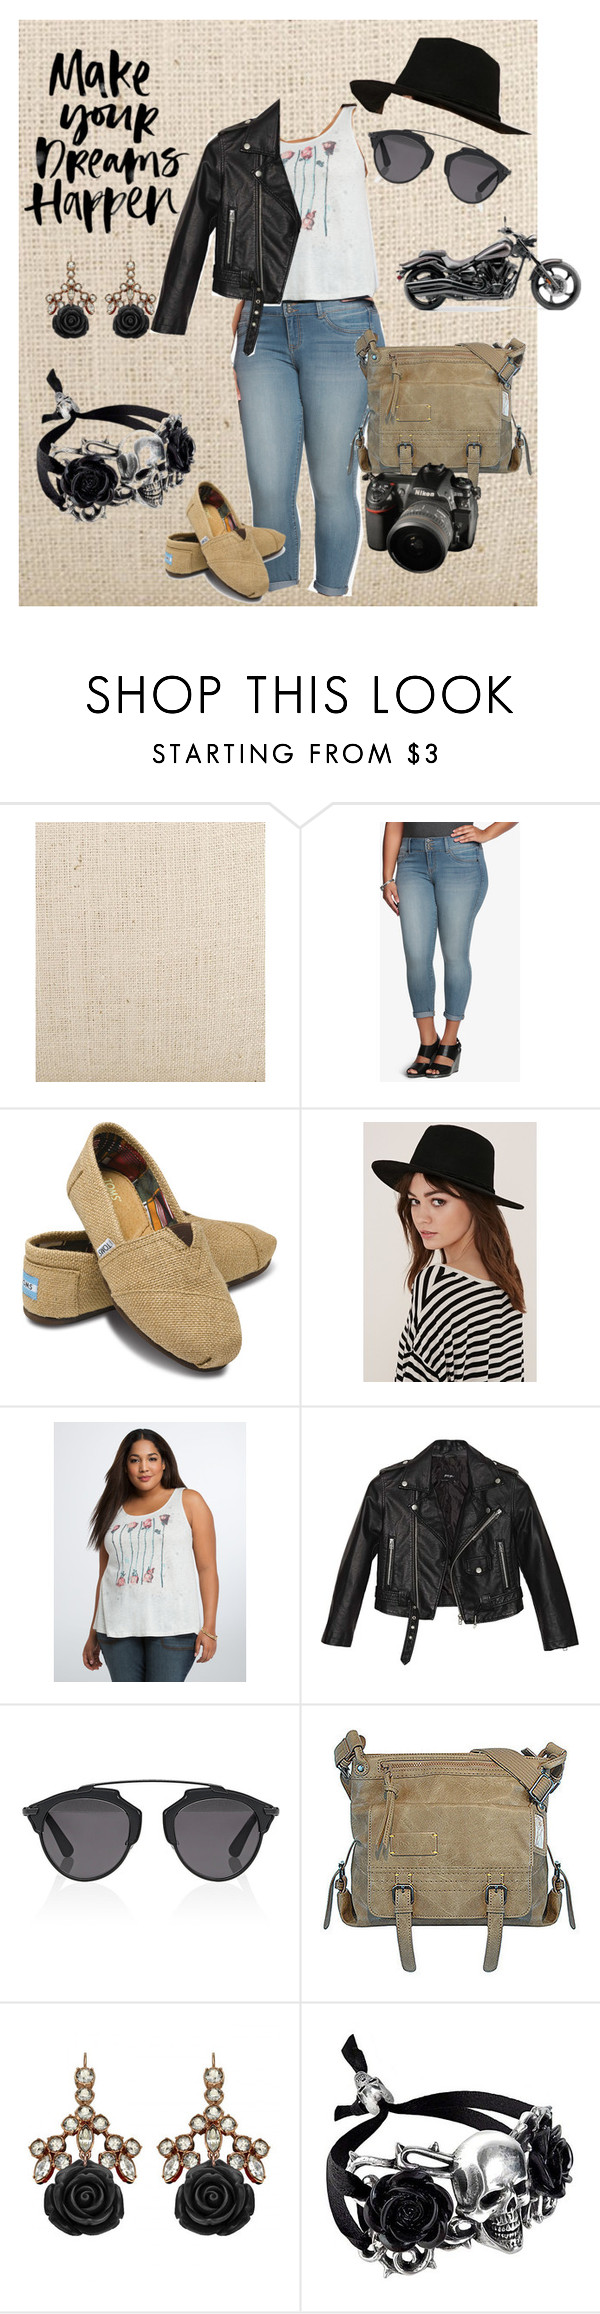 """When I'm Happiest"" by pj-cox on Polyvore featuring Torrid, TOMS, Forever 21, Nasty Gal, Christian Dior, Sherpani, Mawi, Lab and plus size clothing"